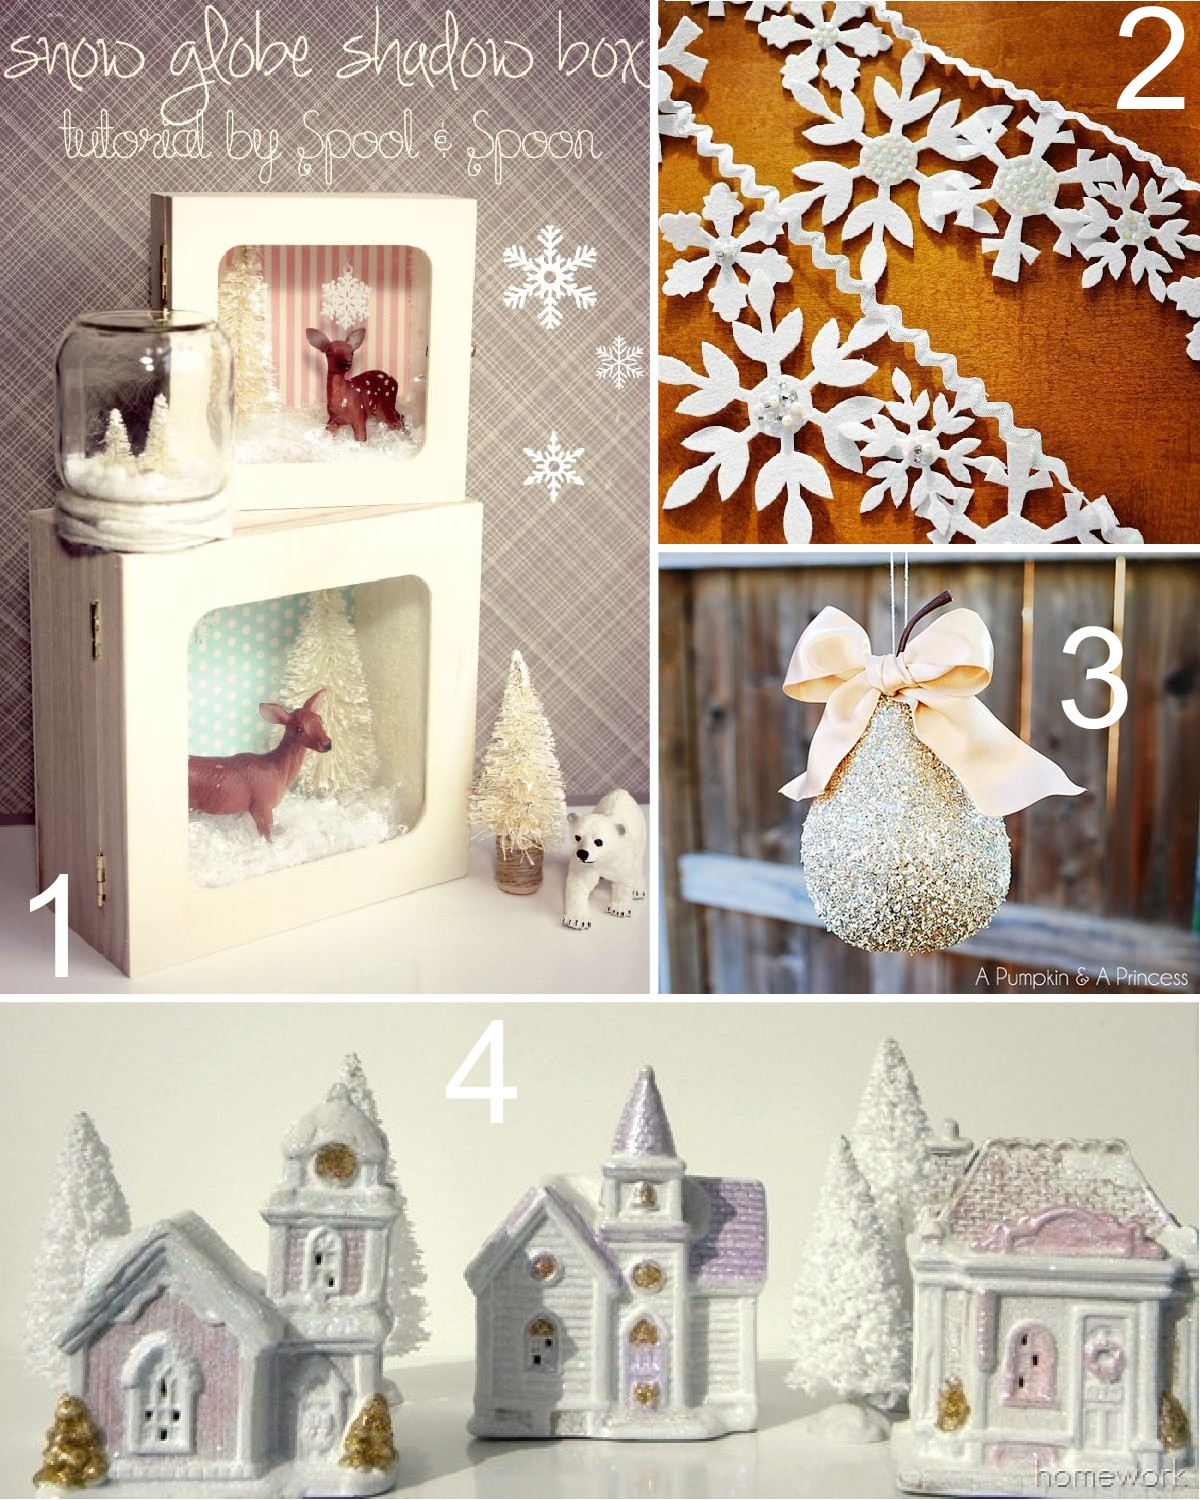 House decoration ideas christmas - 25 Winter Wonderland Craft Projects The Scrap Shoppe